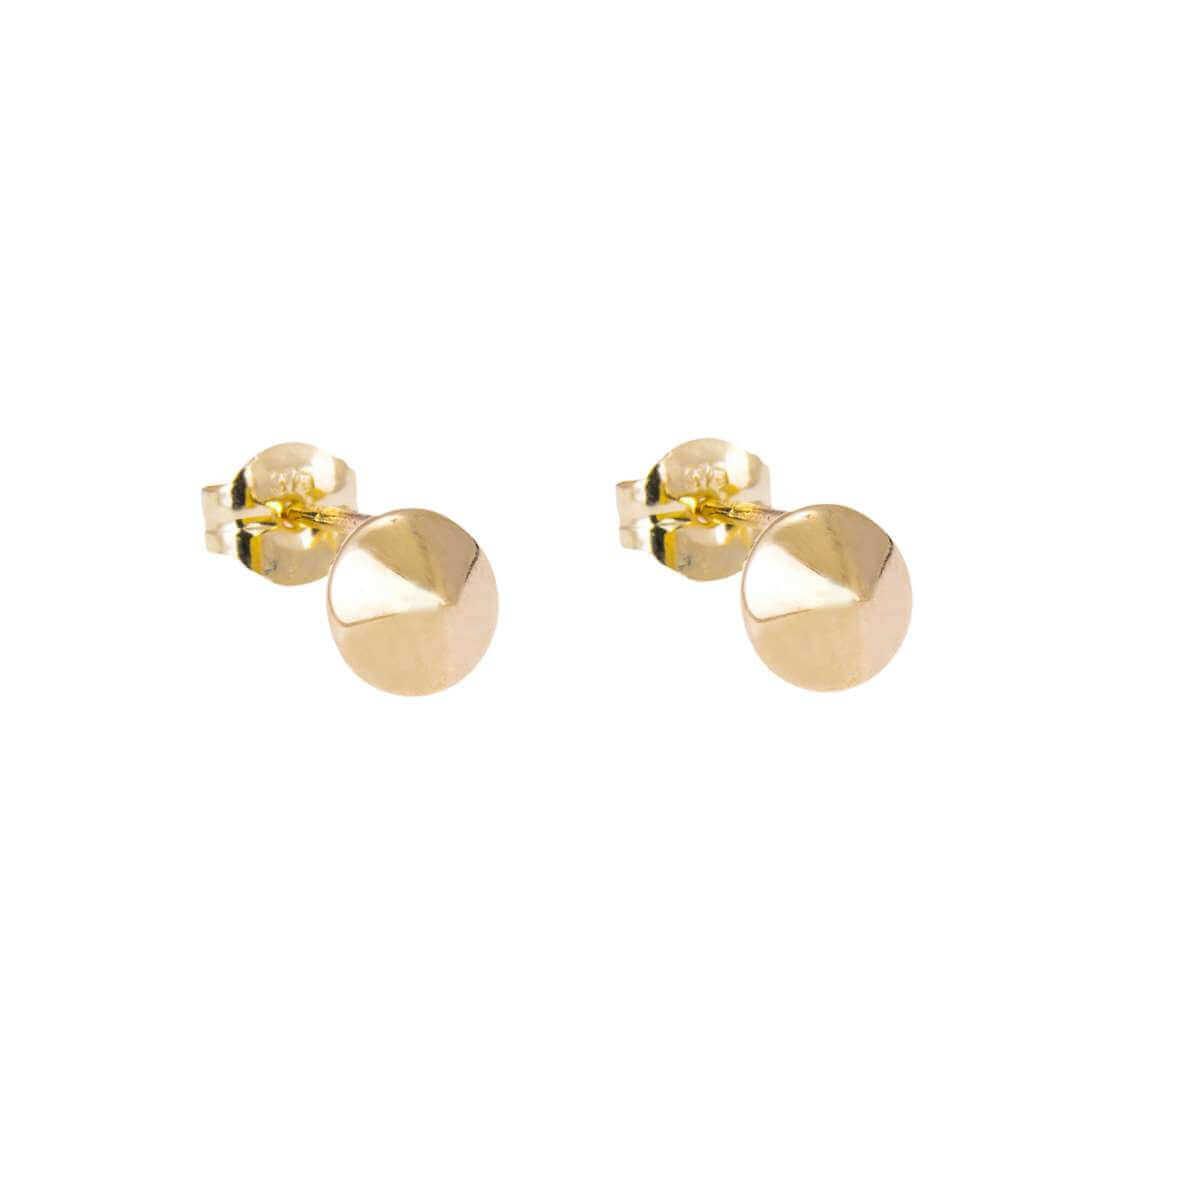 9ct Gold Spike Stud Earrings